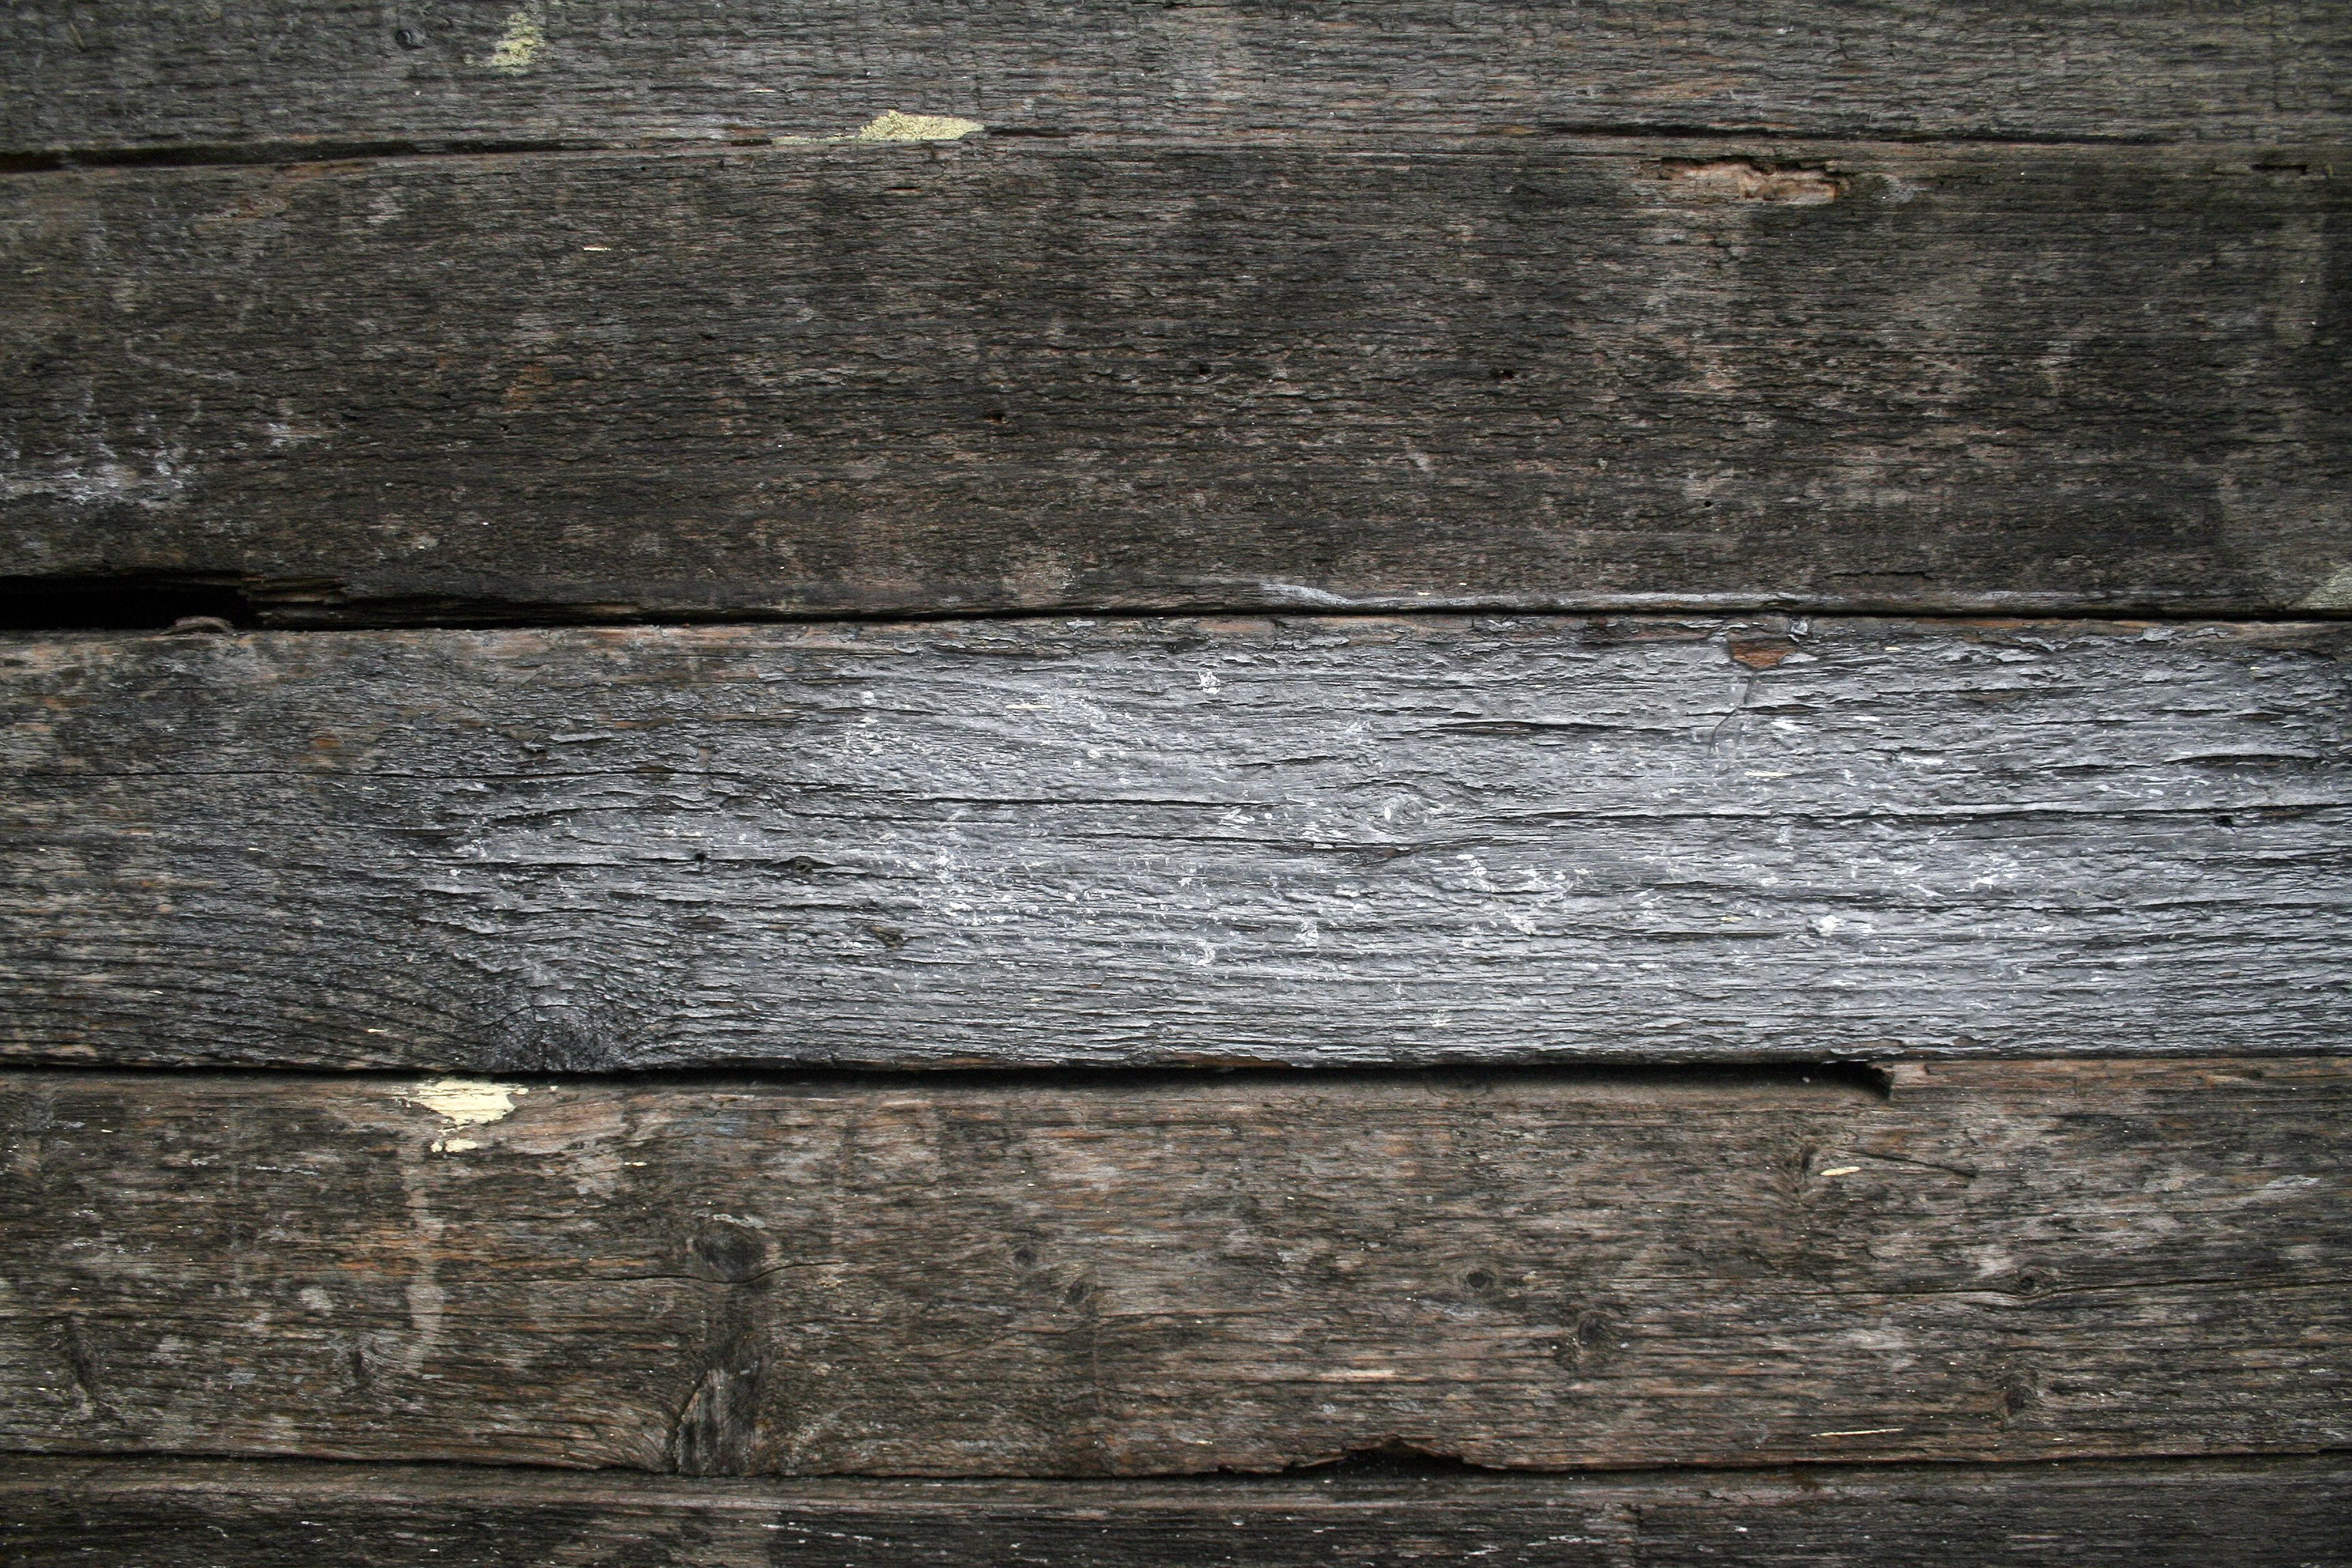 Wood texture wooden plank - Find This Pin And More On Prop Inspiration Free Stock Wood Textures Planks Old